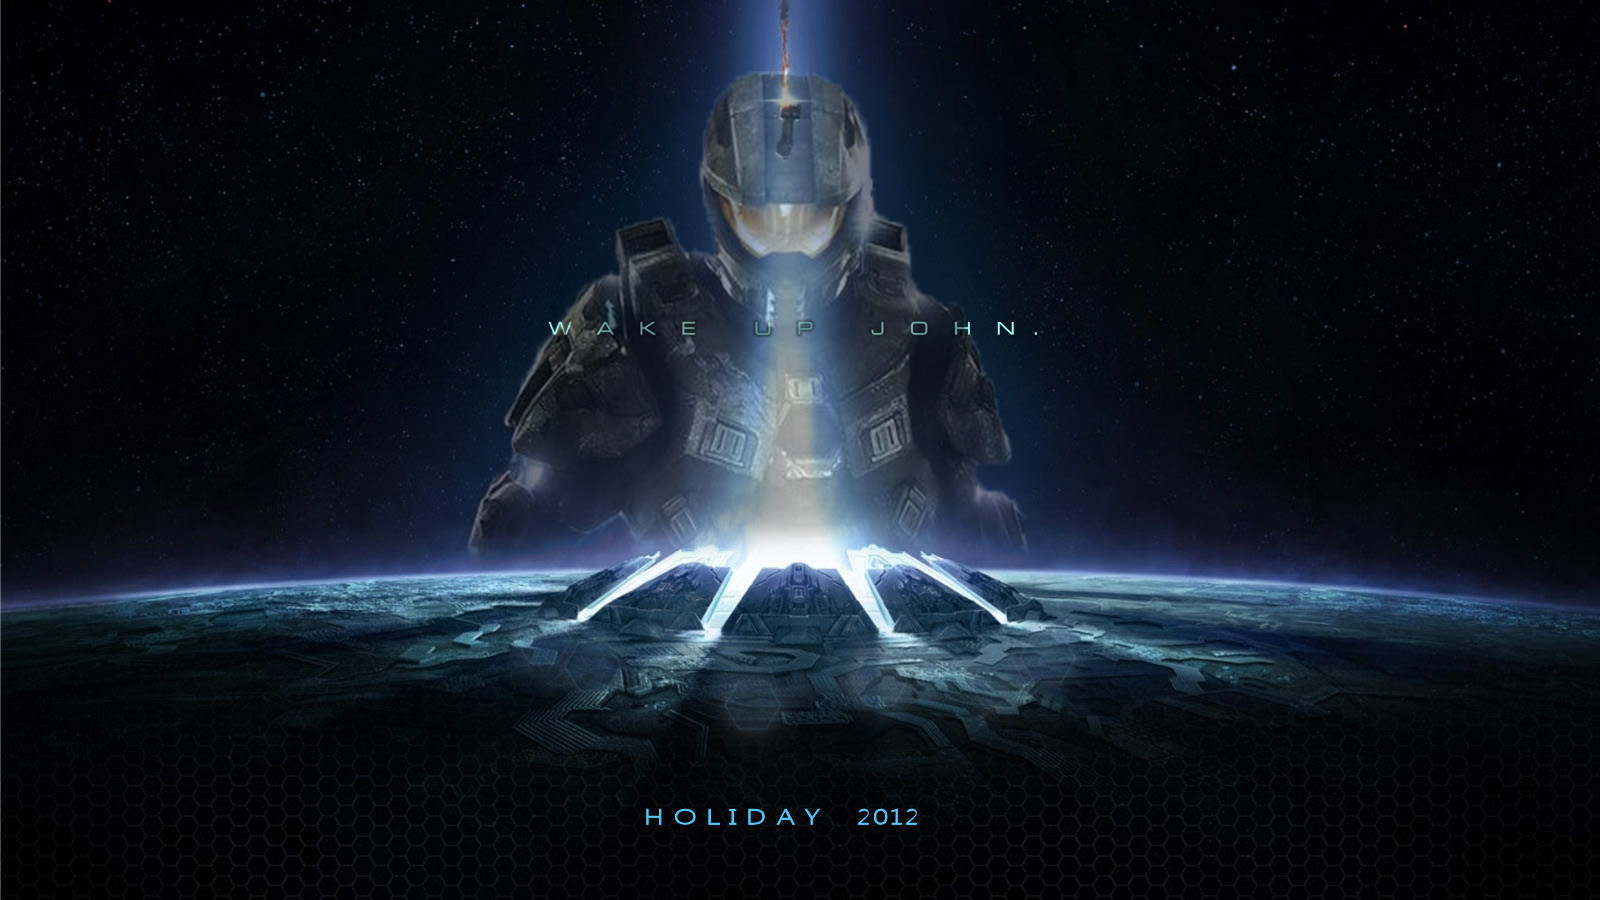 other wallpapers of Halo 4 You are downloading Halo 4 wallpaper 4 1600x900